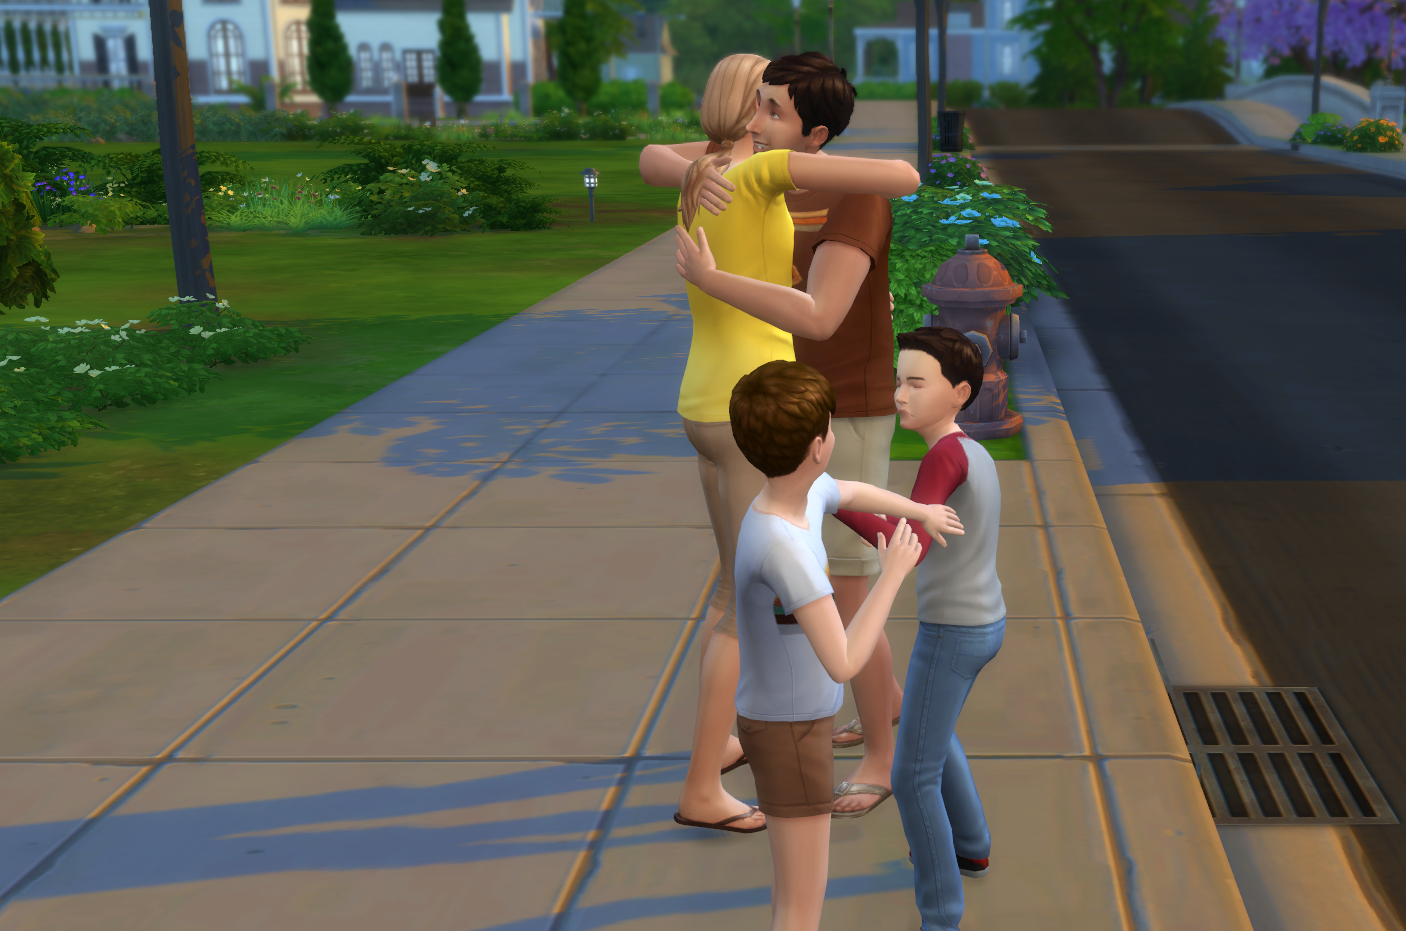 She Took Up His Sims Challenge, Now They're Married